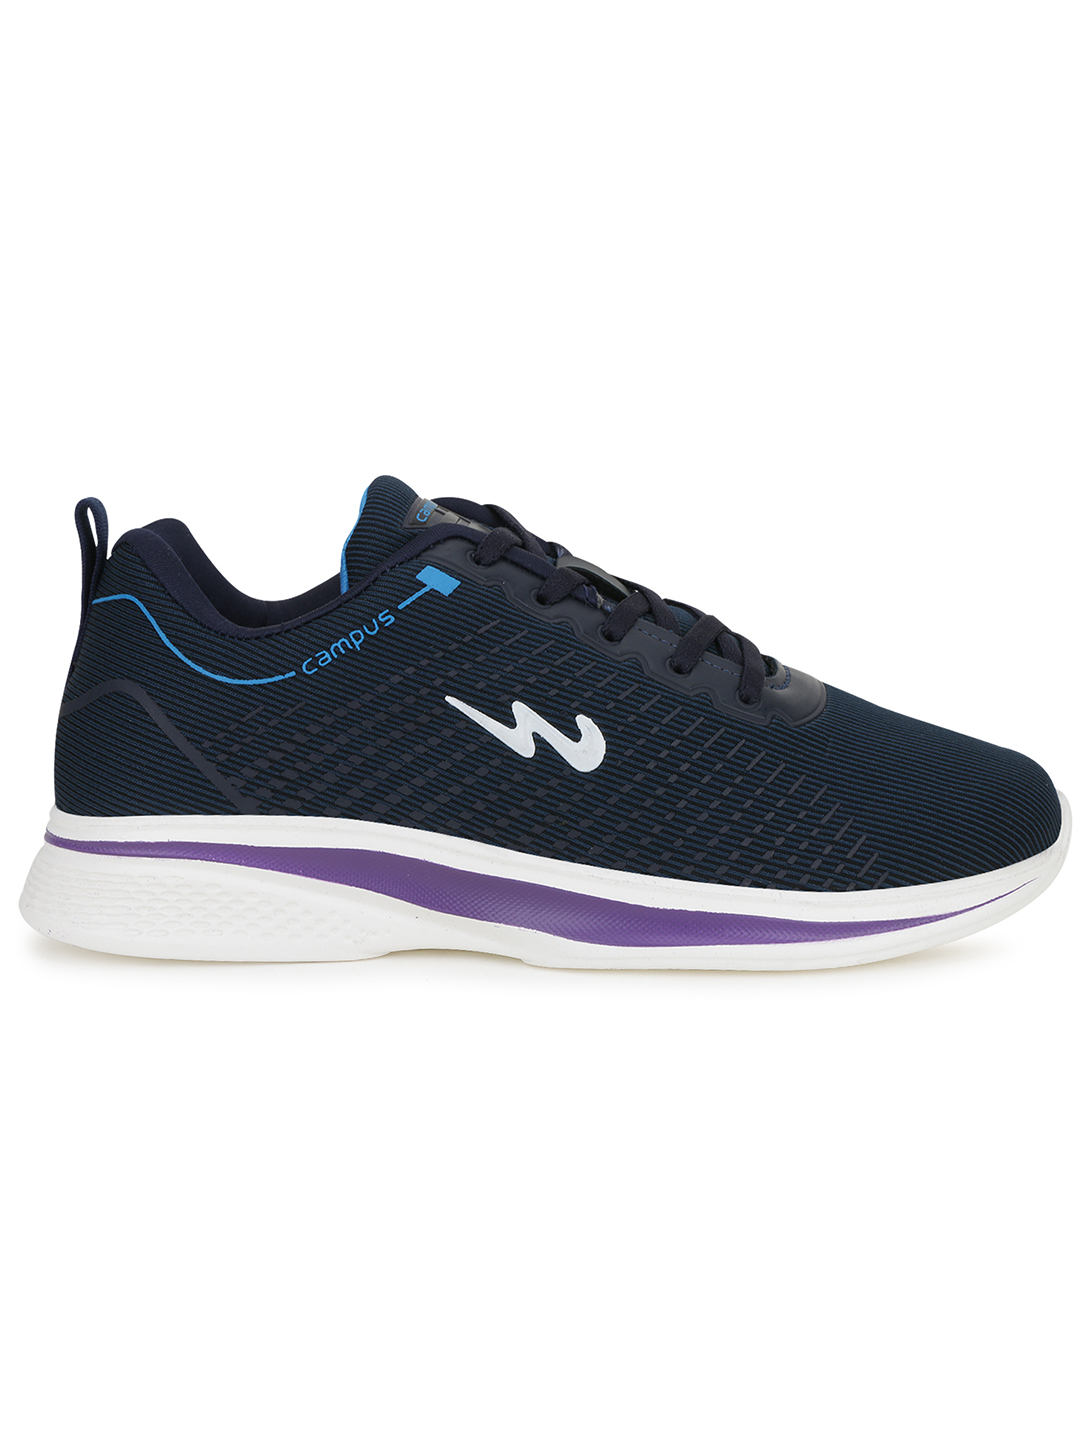 Campus Shoes   Blue Reva Running Shoes